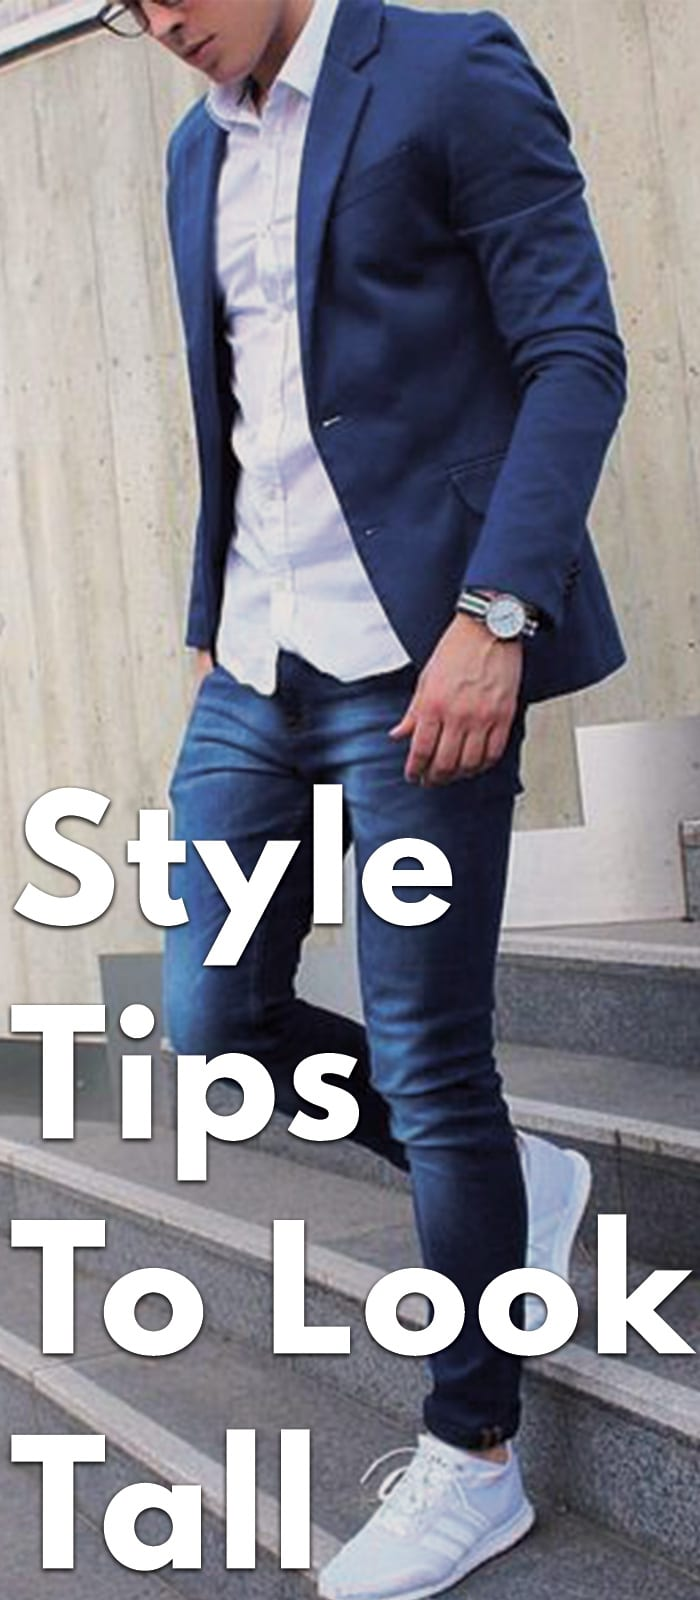 Style-Tips-To-Look-Tall